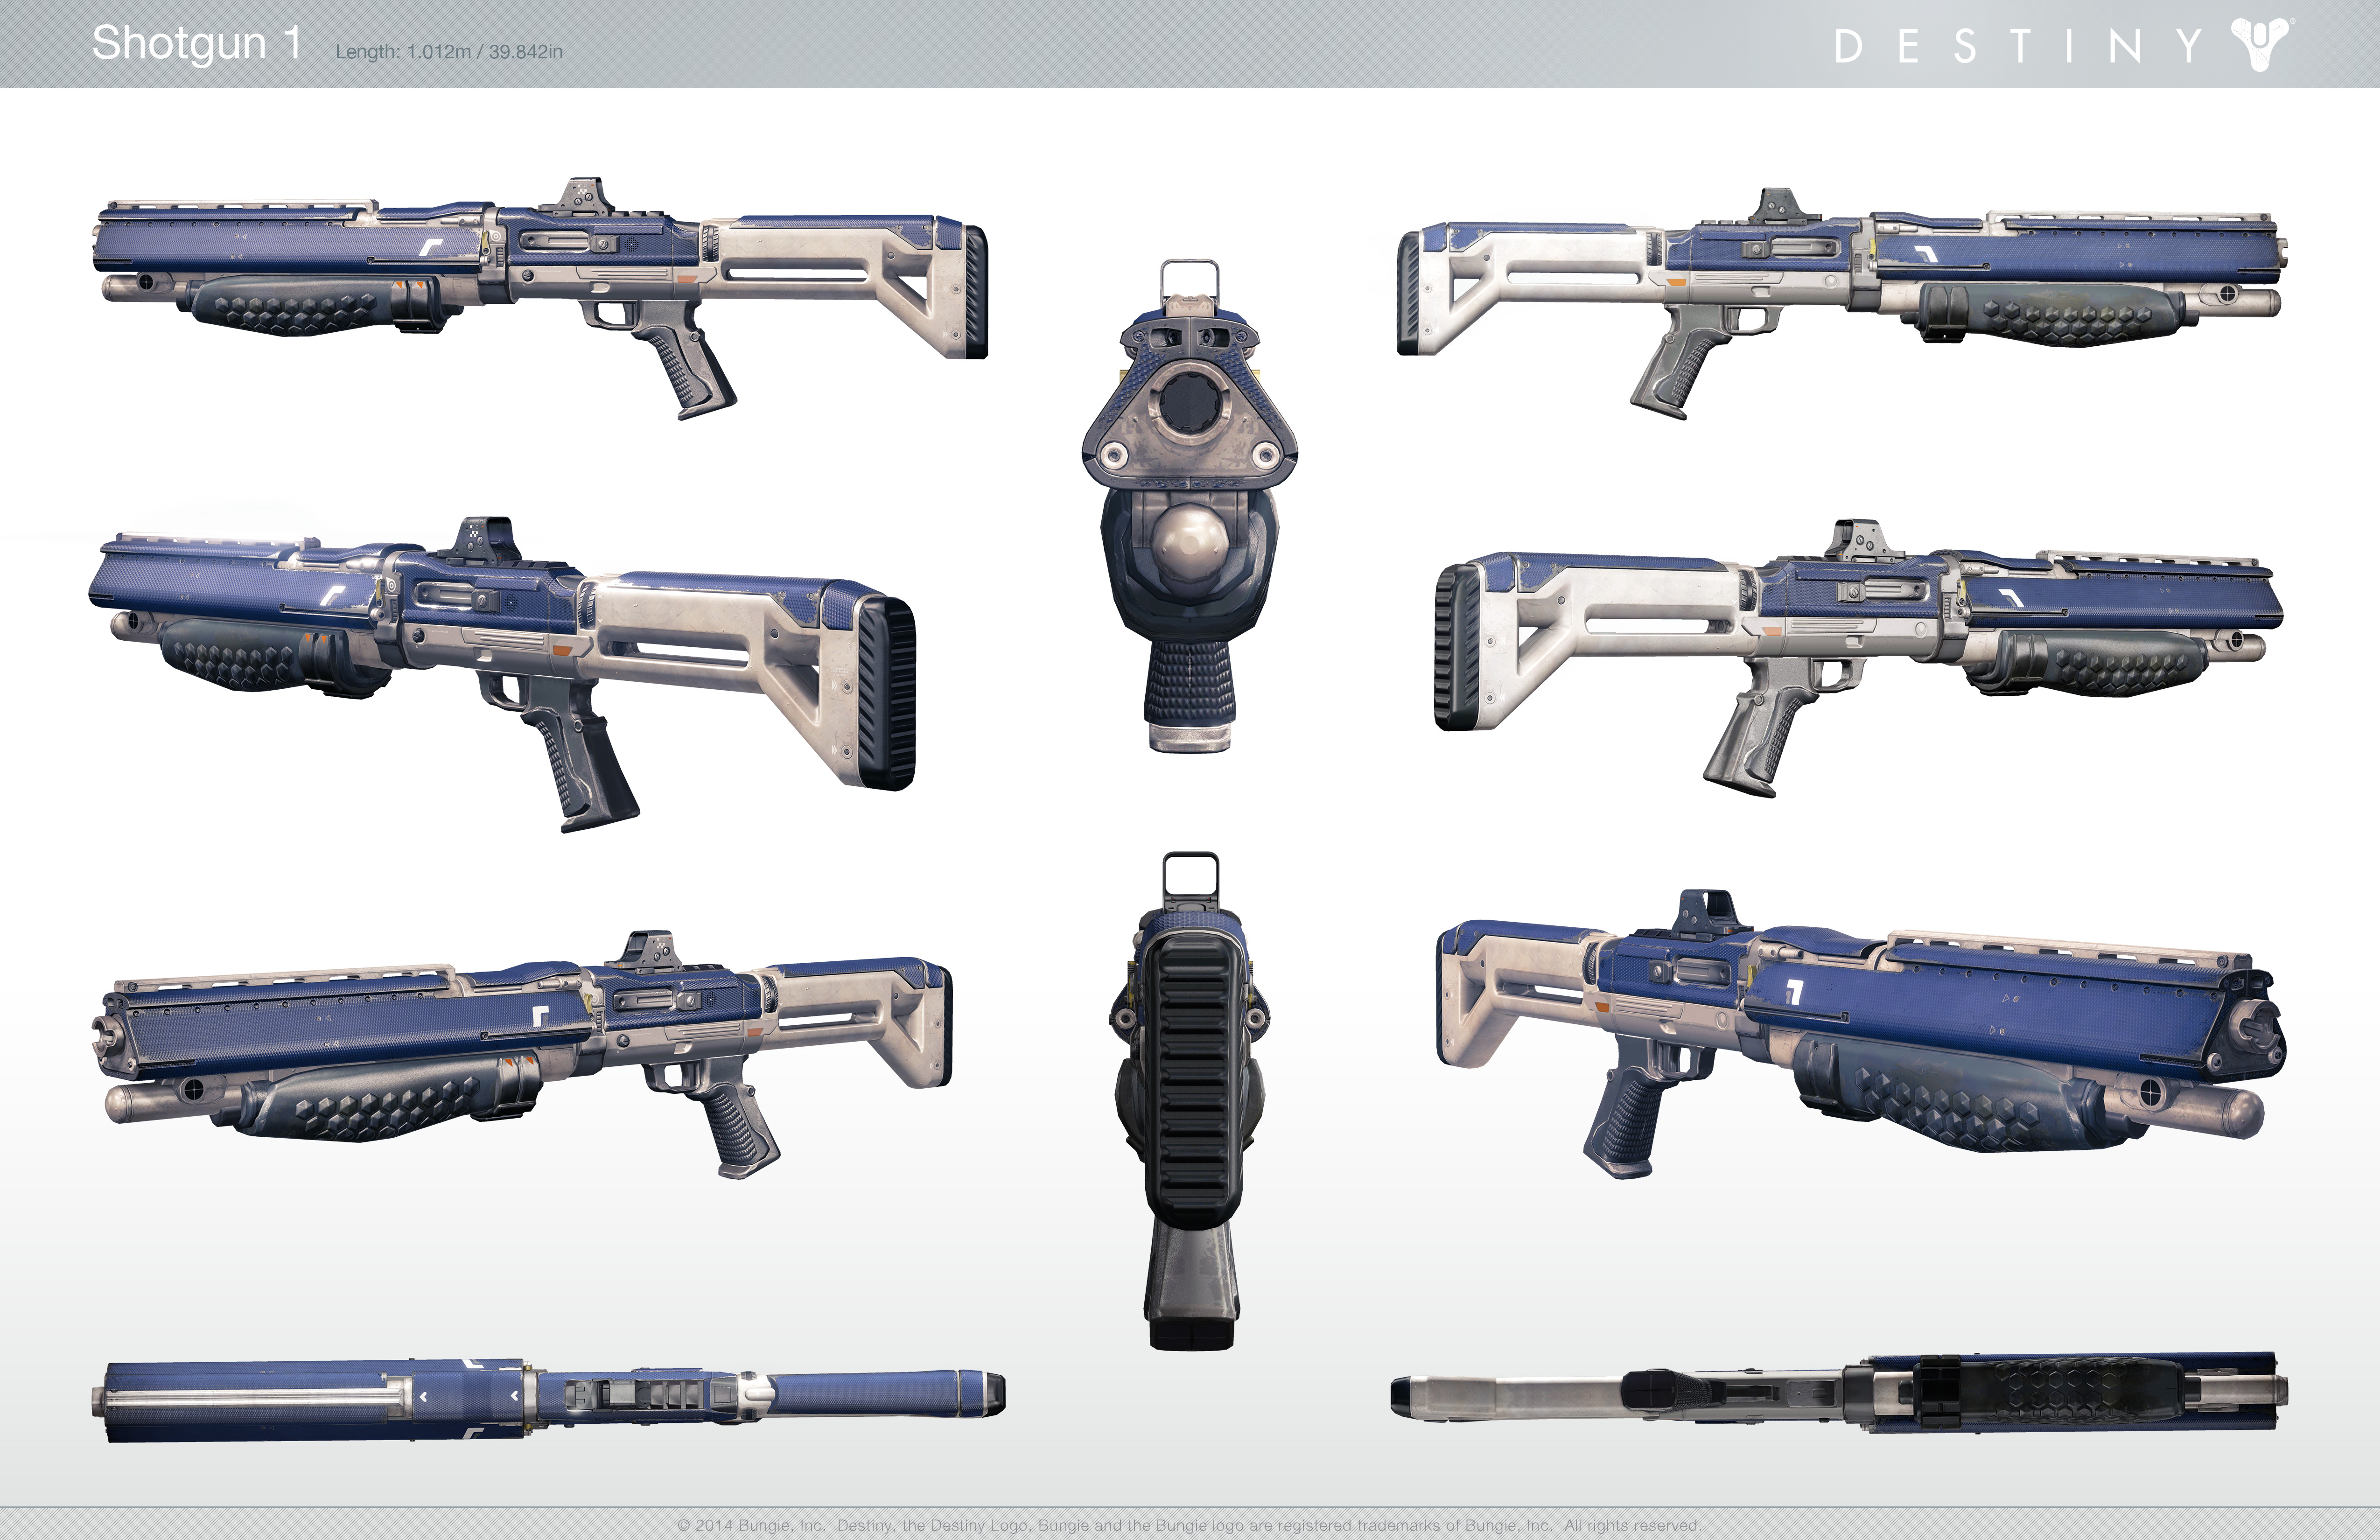 Dress Up as Your Favorite Guardian With This Handy Destiny ...